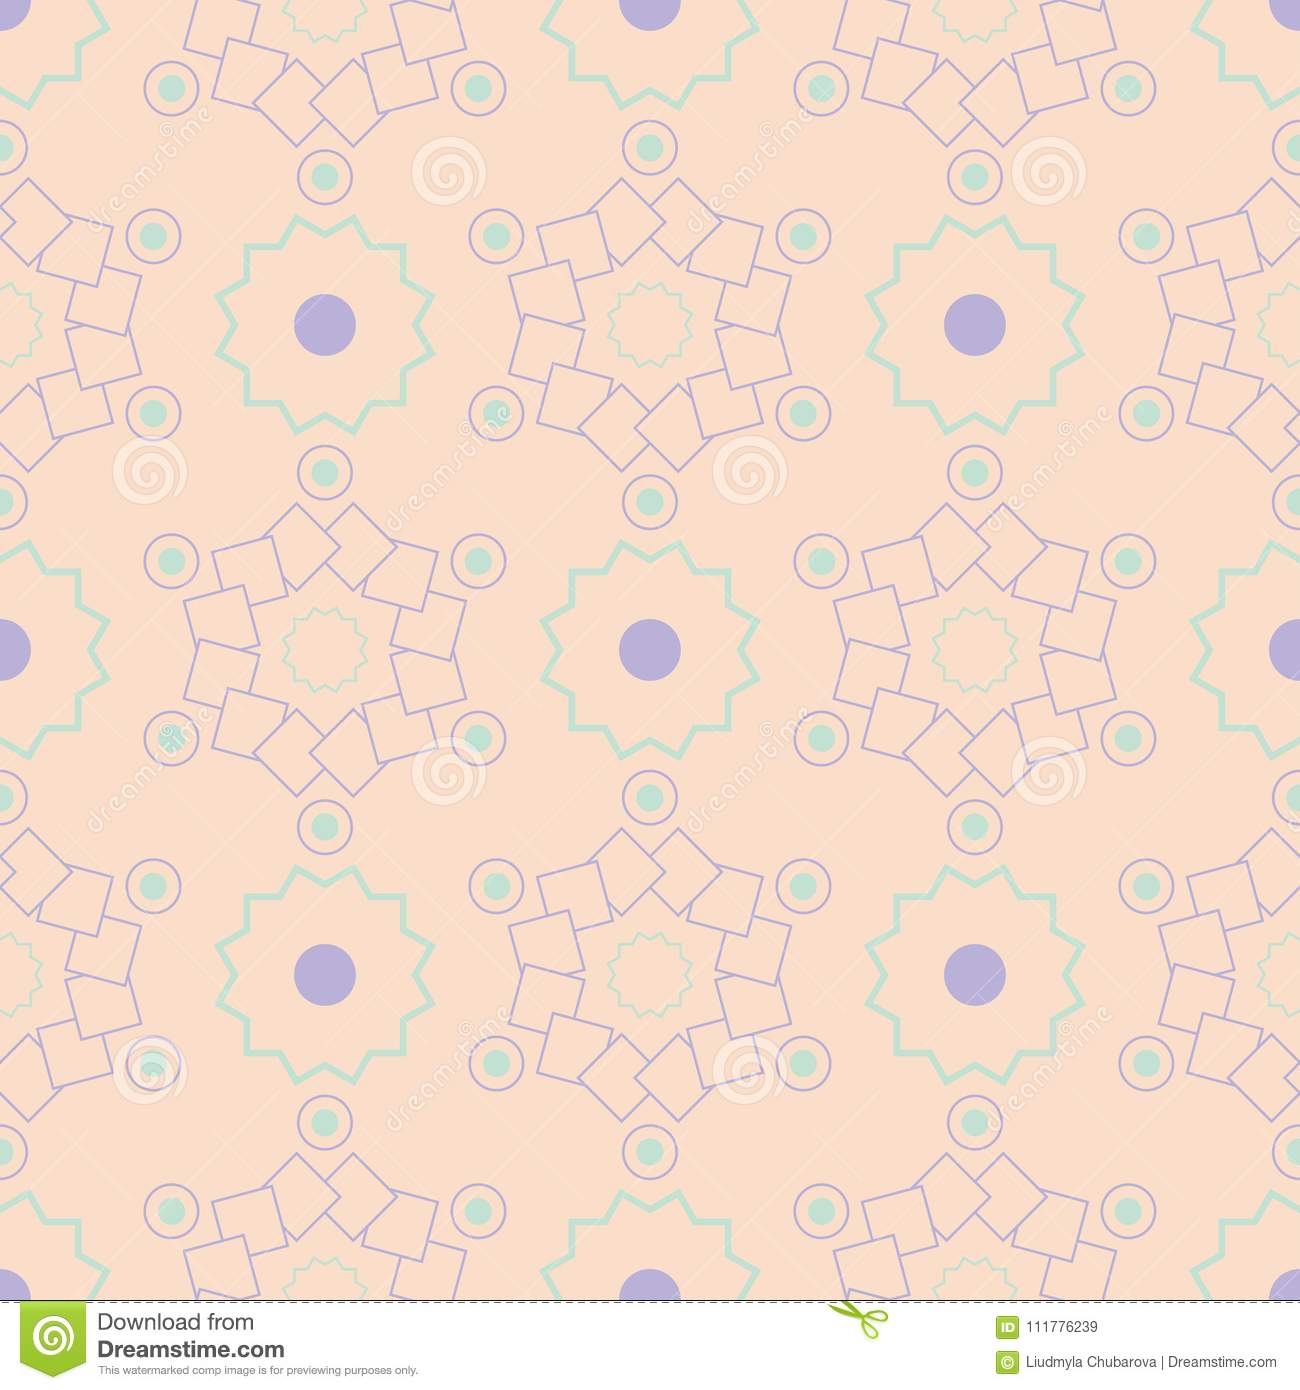 Geometric multi colored seamless pattern. Beige background with violet and blue design elements